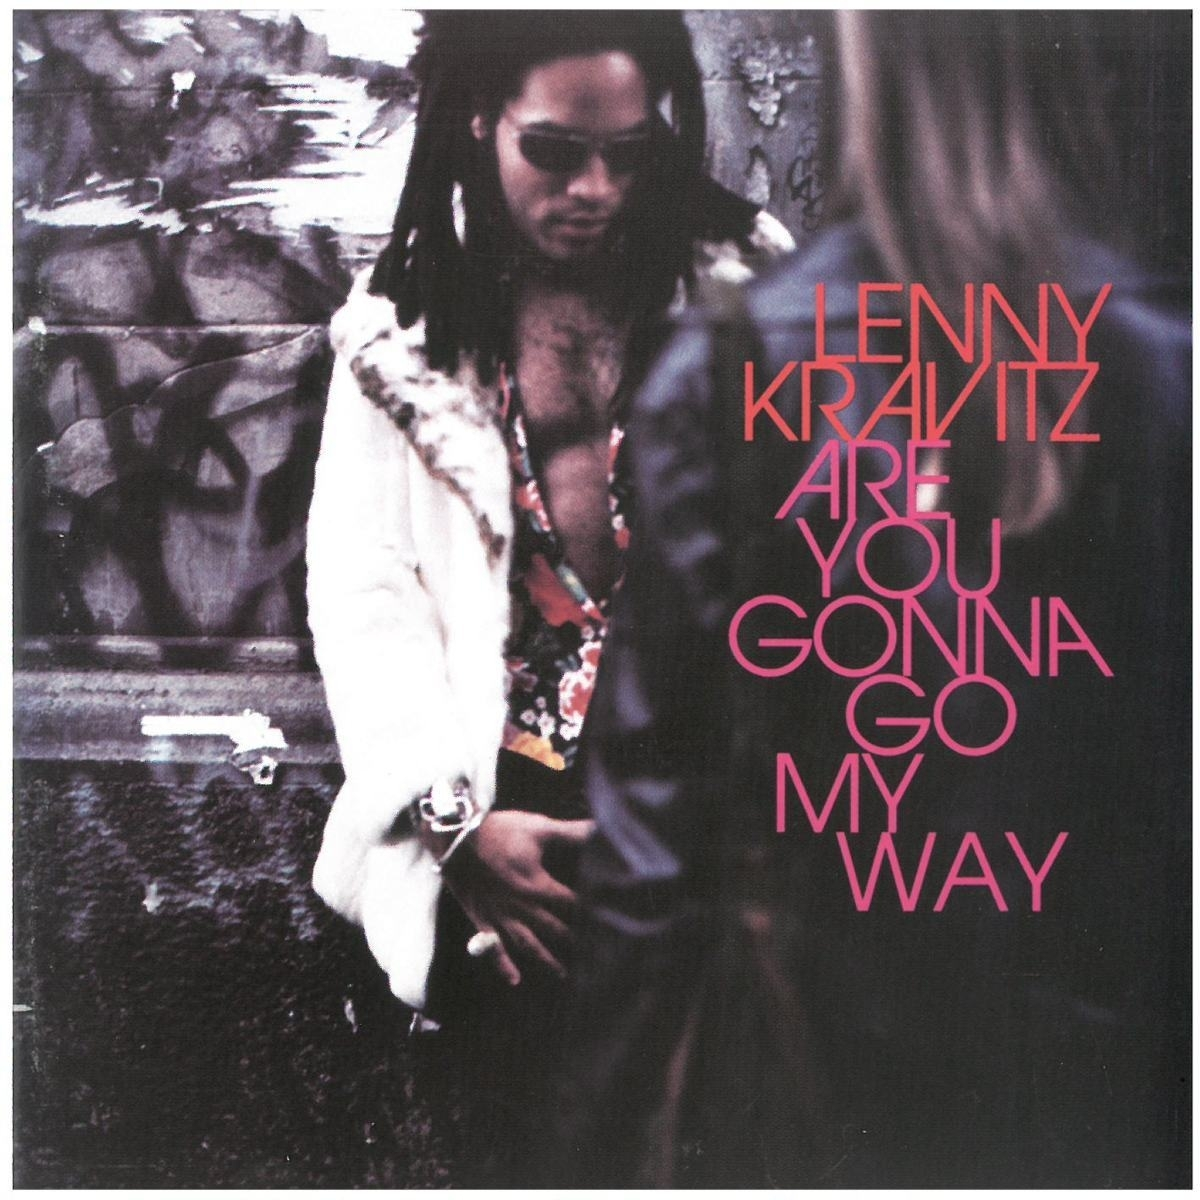 LENNY KRAVITZ ARE YOU GONNA GO MY WAY CD_画像1